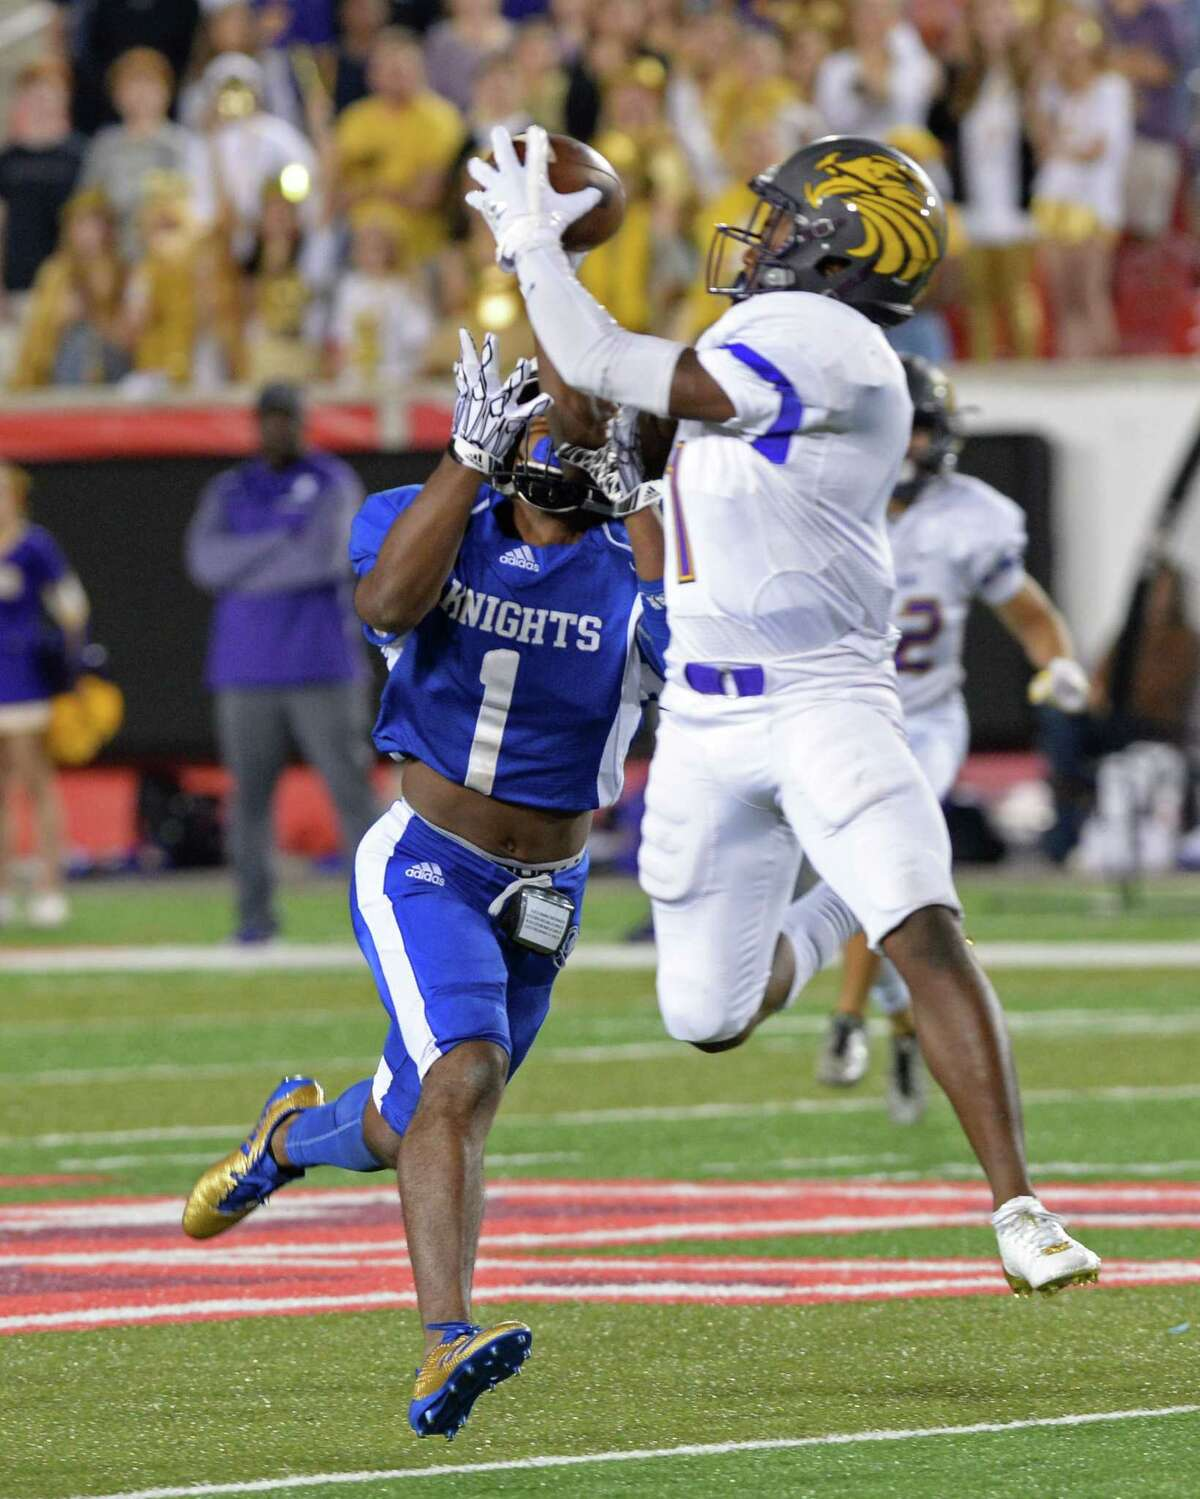 Johnathon Thomas (1) of Kinkaid intercepts a pass intended for Jaylen Davis (1) of Episcopal in the first quarter of SPC Football Championship game between the Kinkaid Falcons and the Episcopal Knights on November 11, 2017 at TDECU Stadium, Houston, TX.